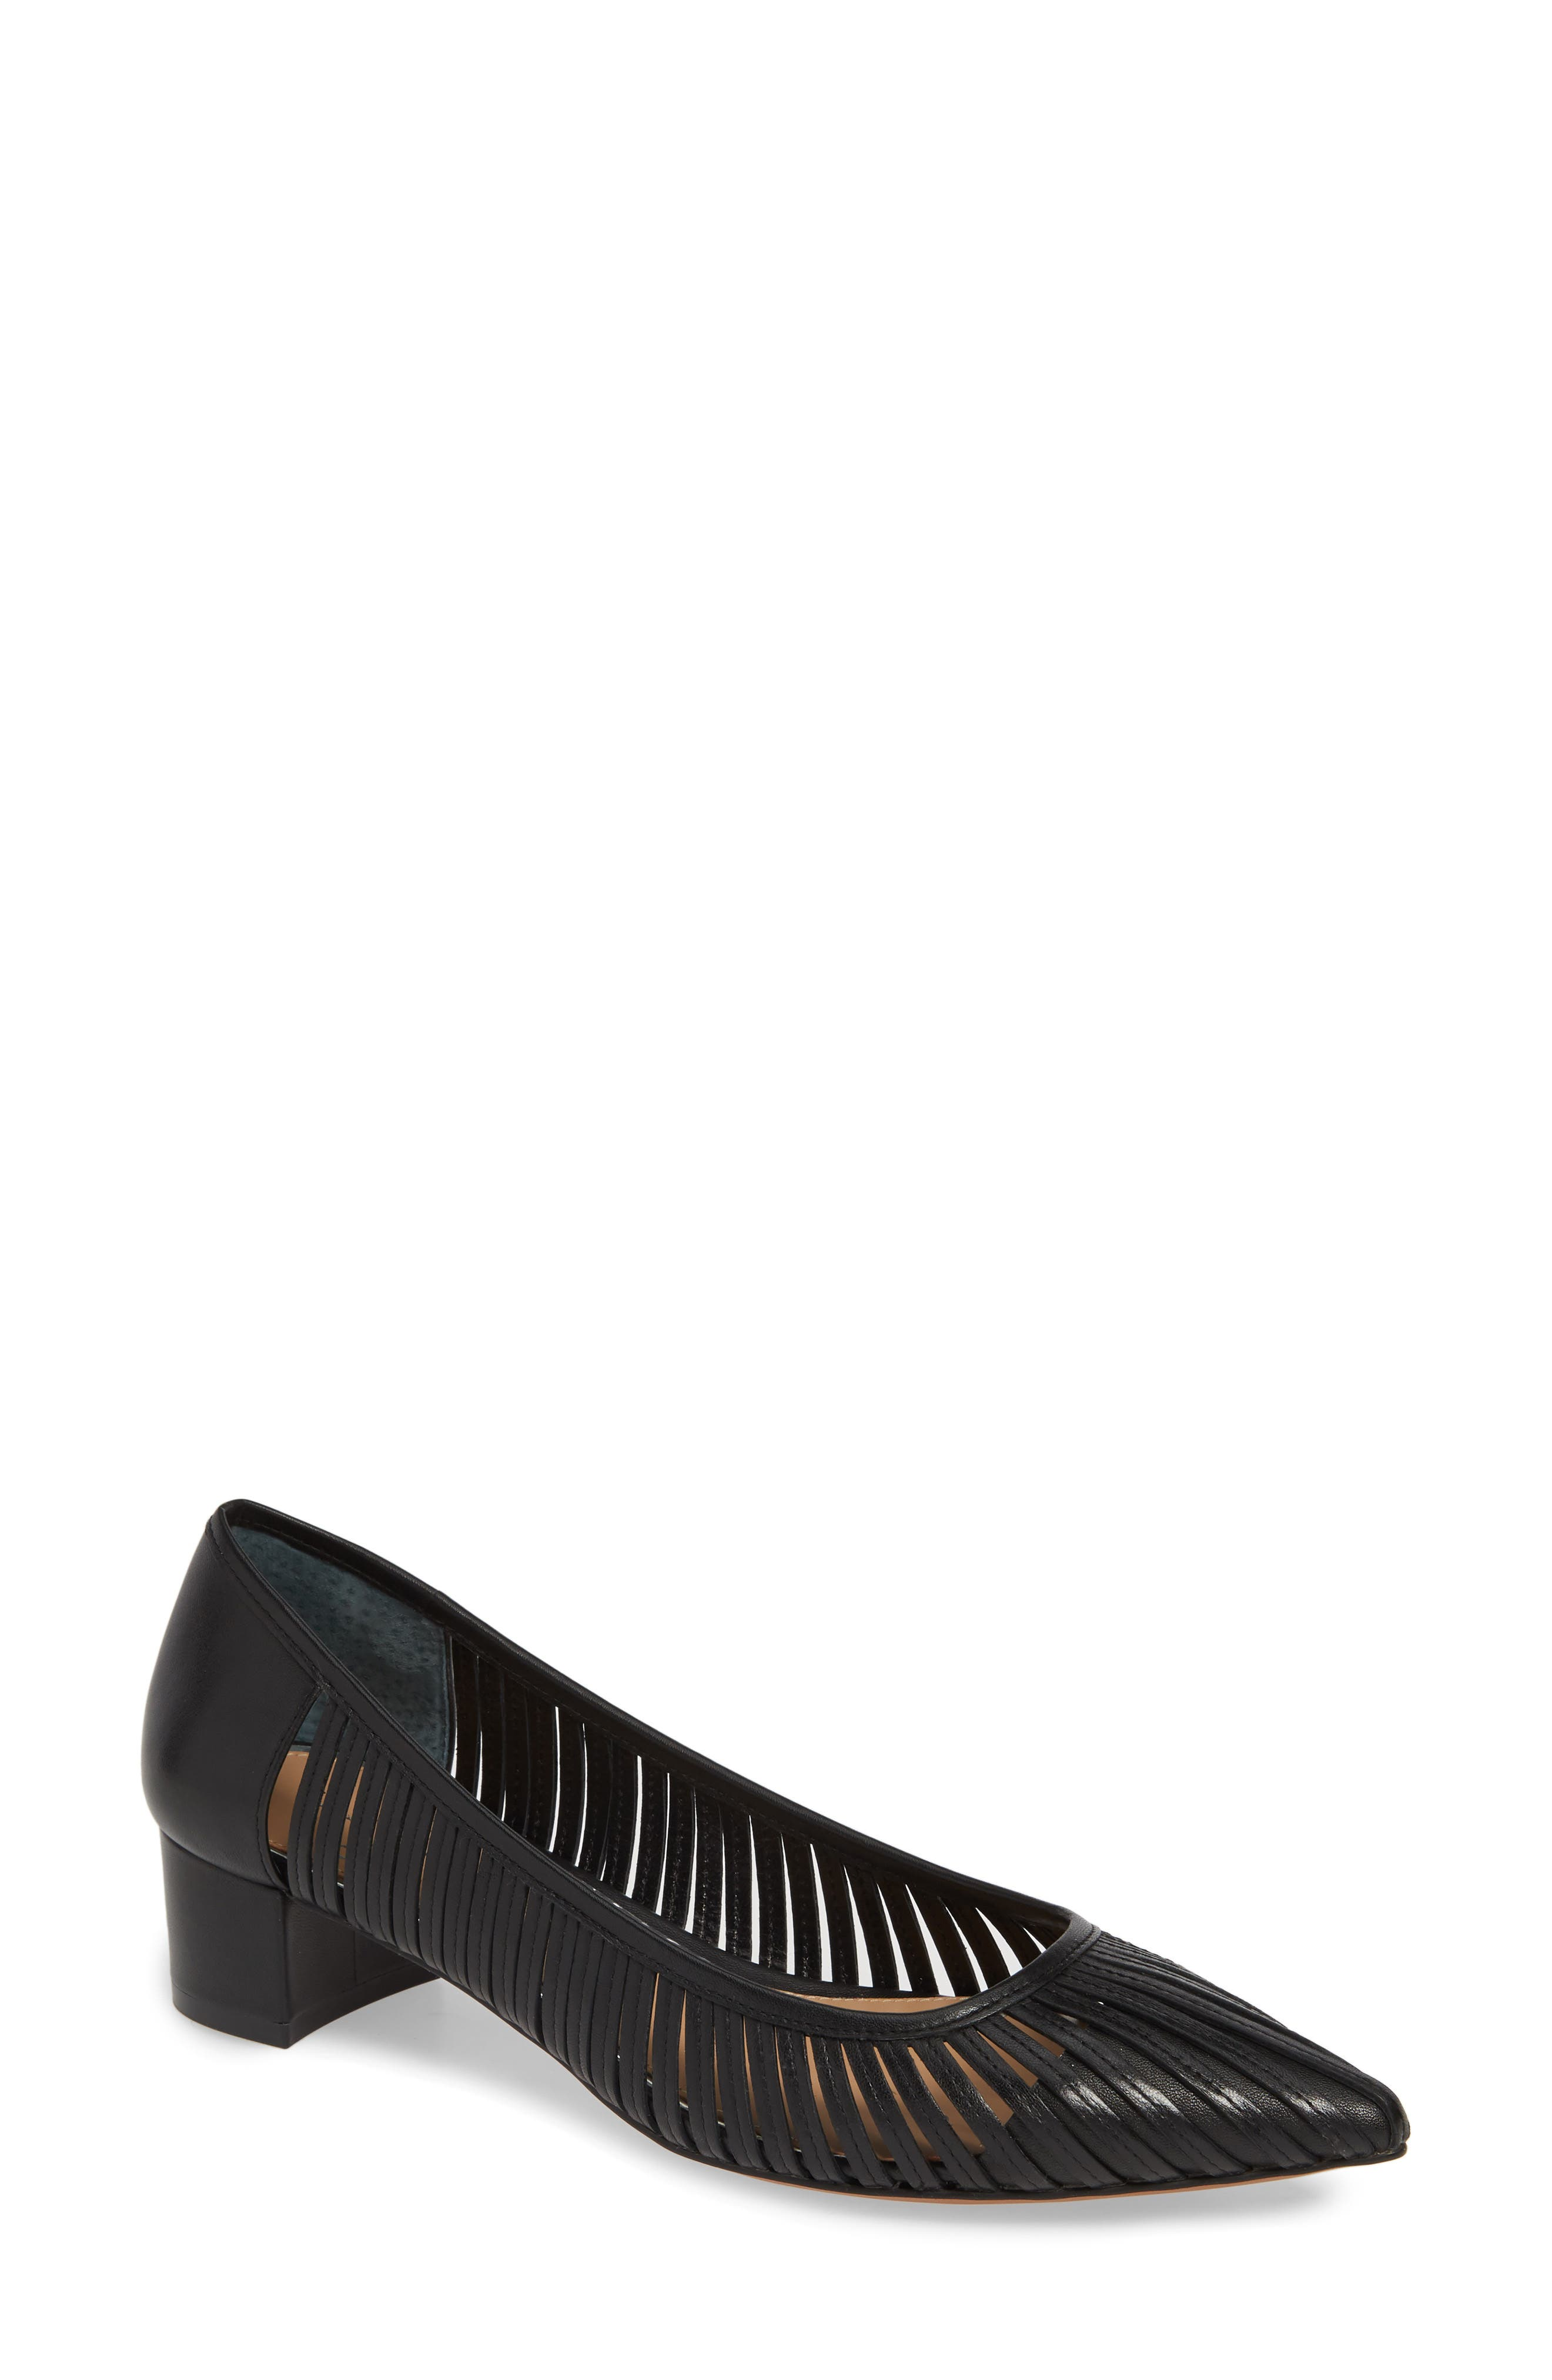 Linea Paolo Bliss Pointy Toe Pump- Black